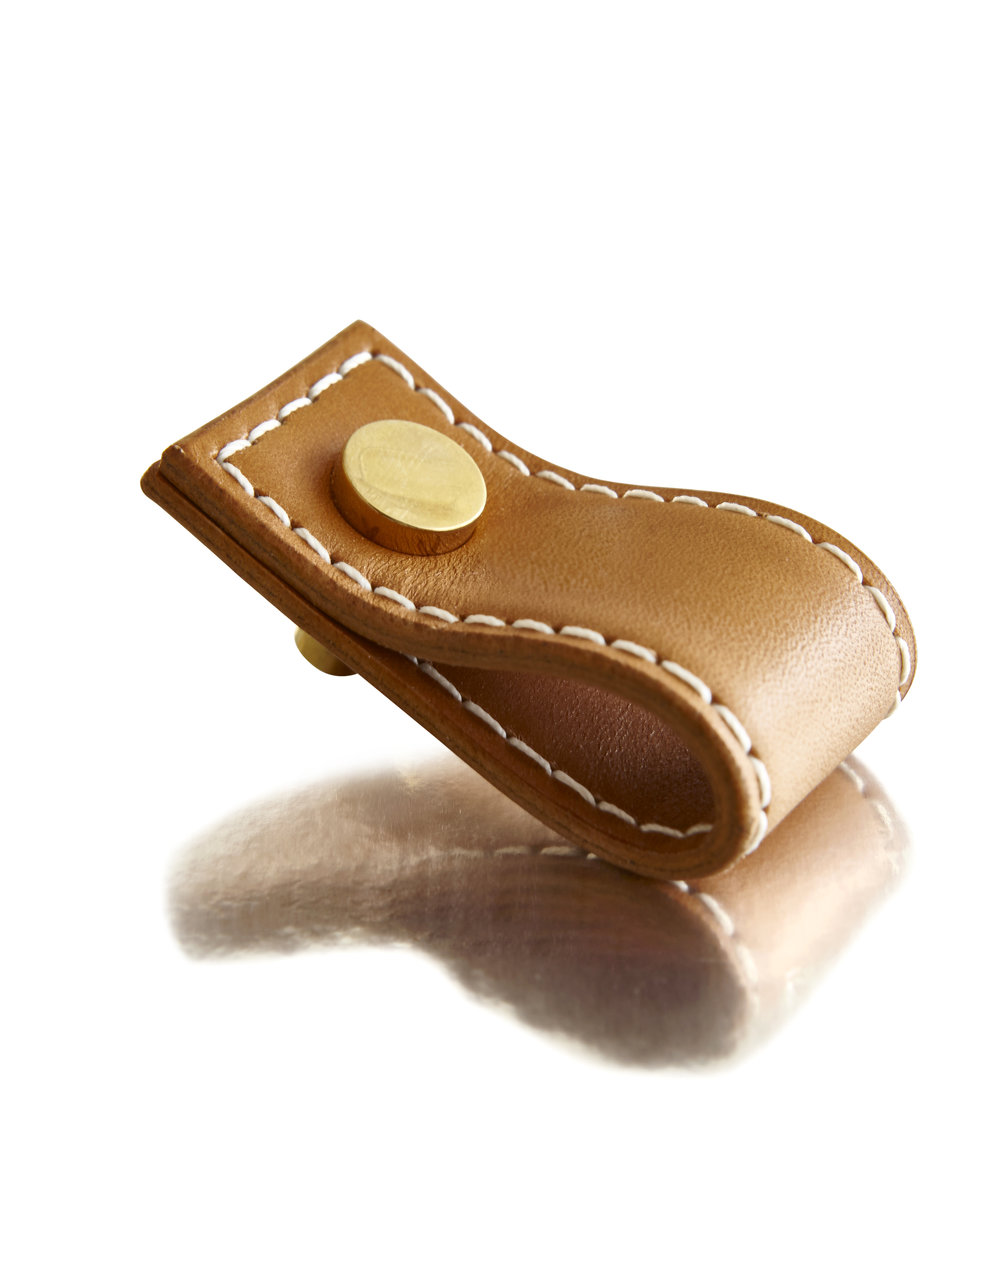 CORDED PULL I CAMEL I EQUESTRIAN          Solid Bronze & Stitched Leather